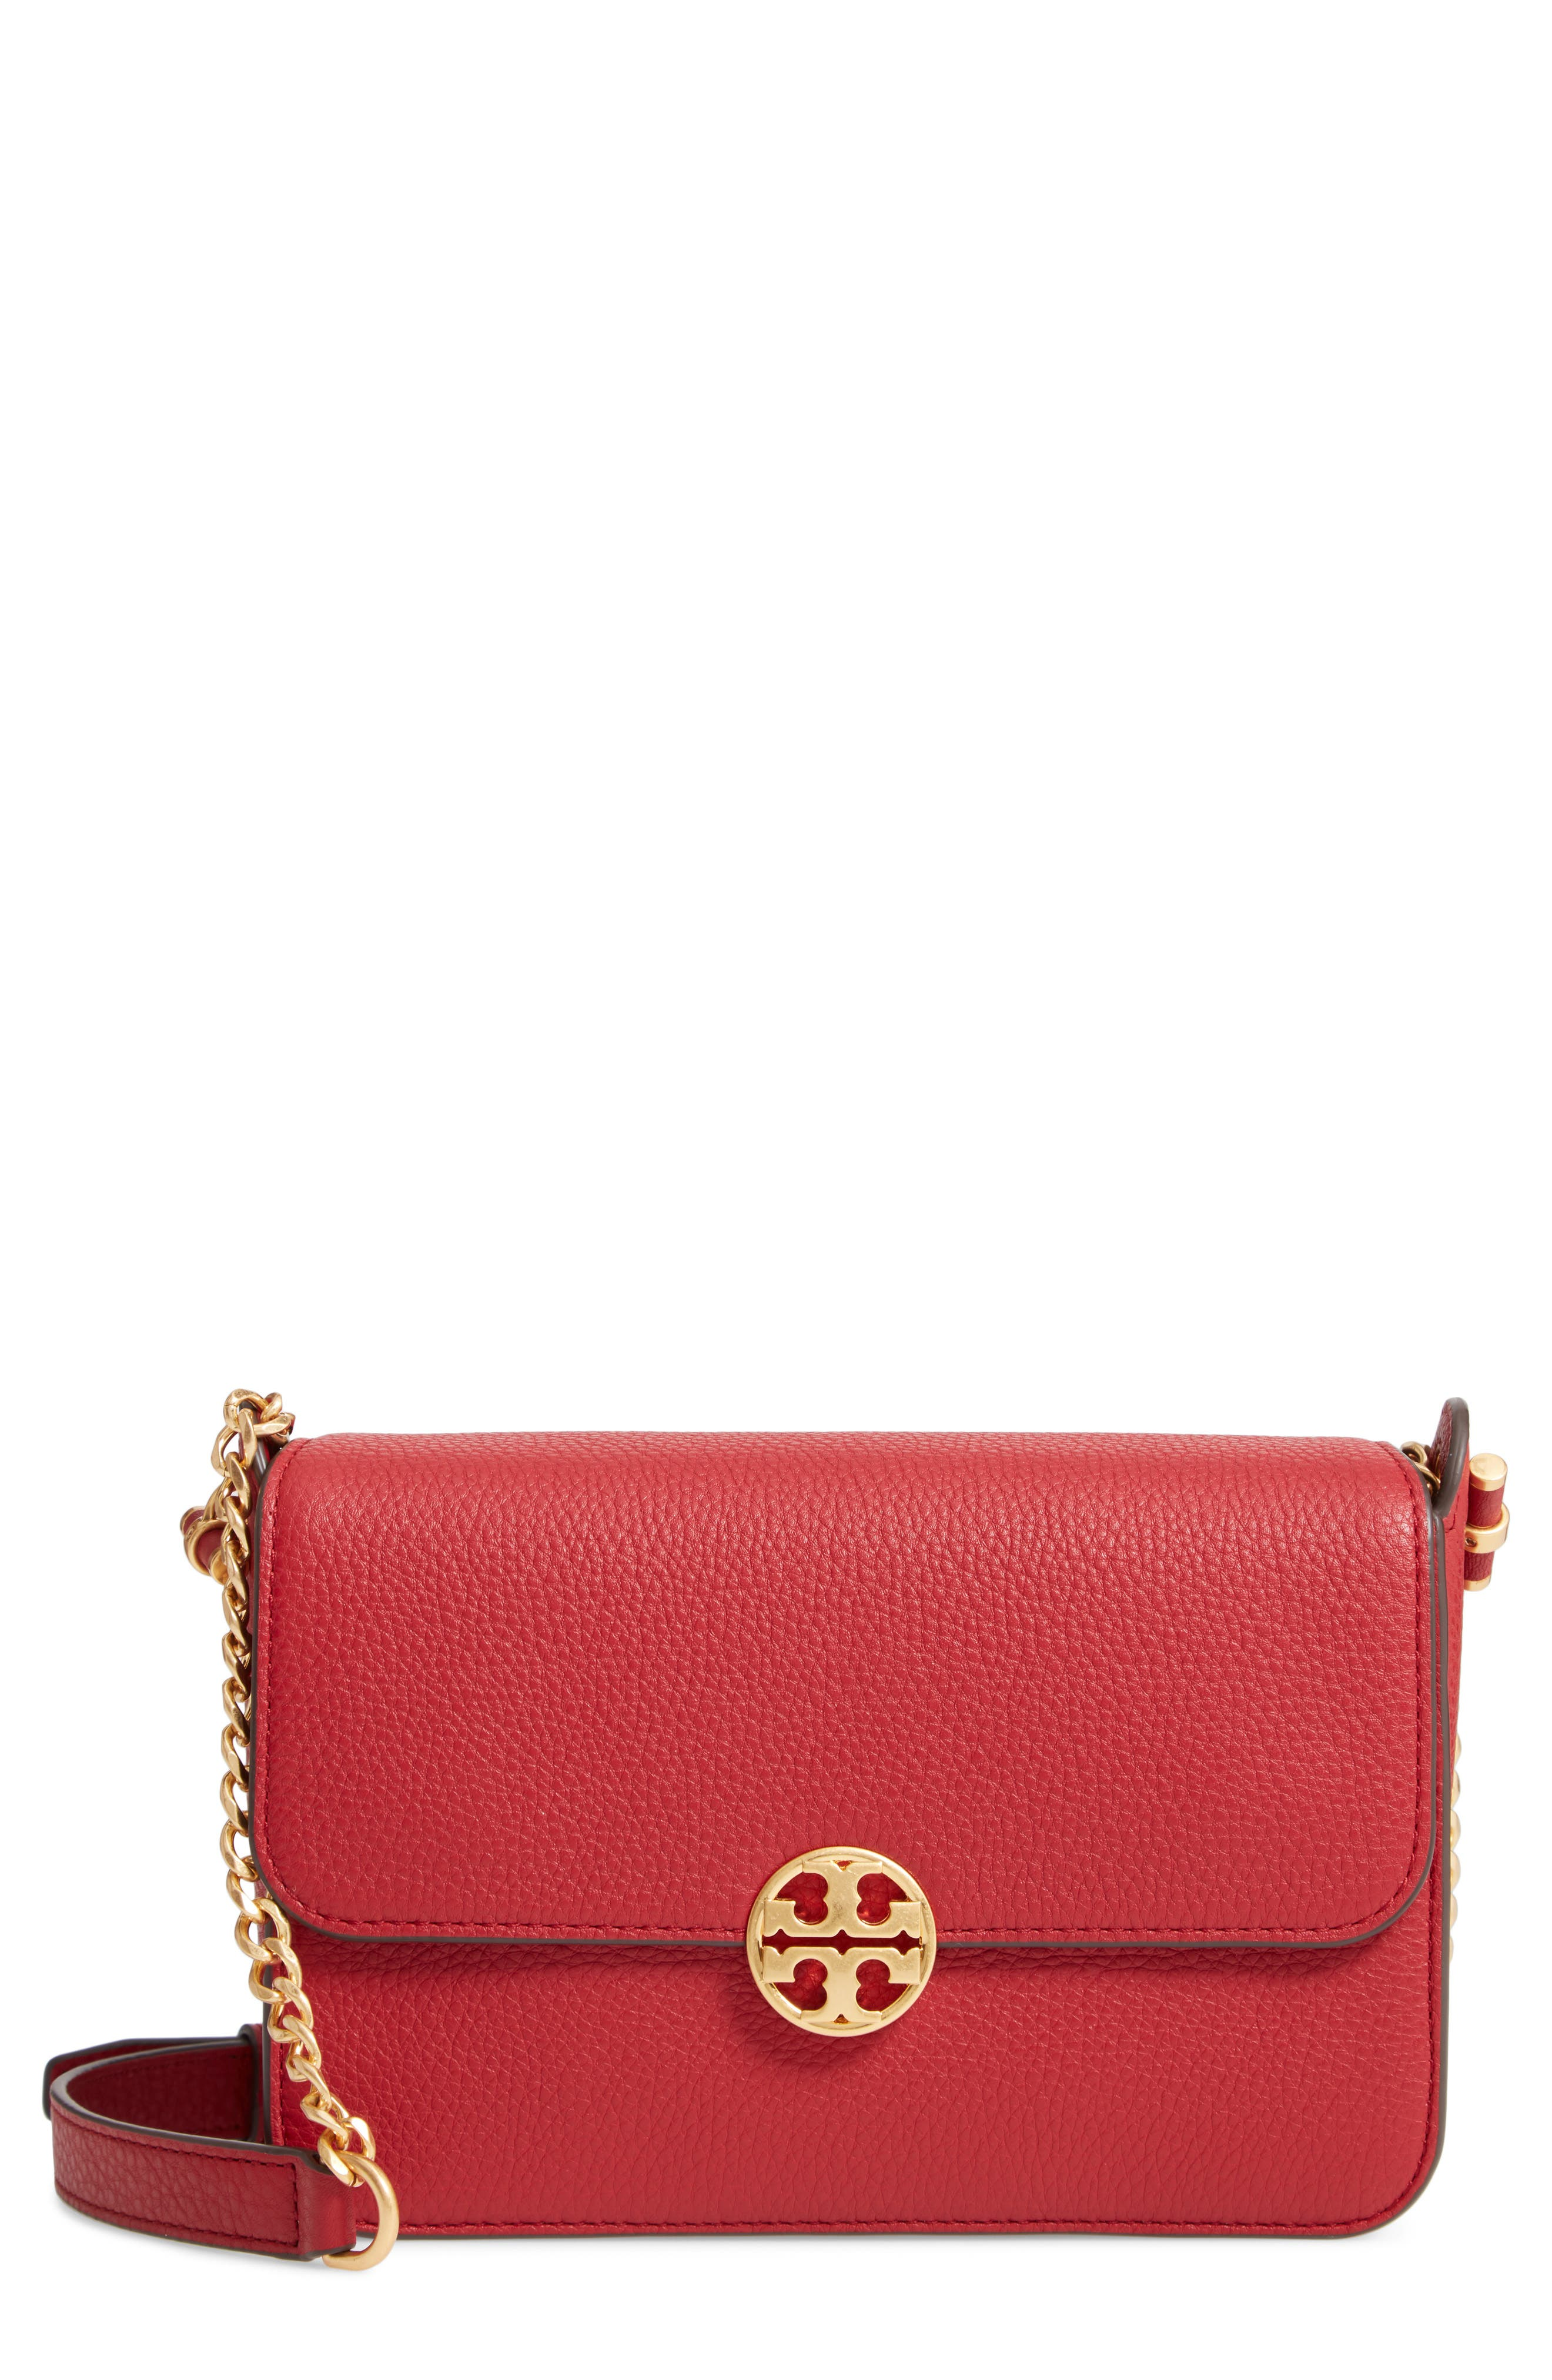 Chelsea Leather Crossbody Bag,                         Main,                         color, REDSTONE